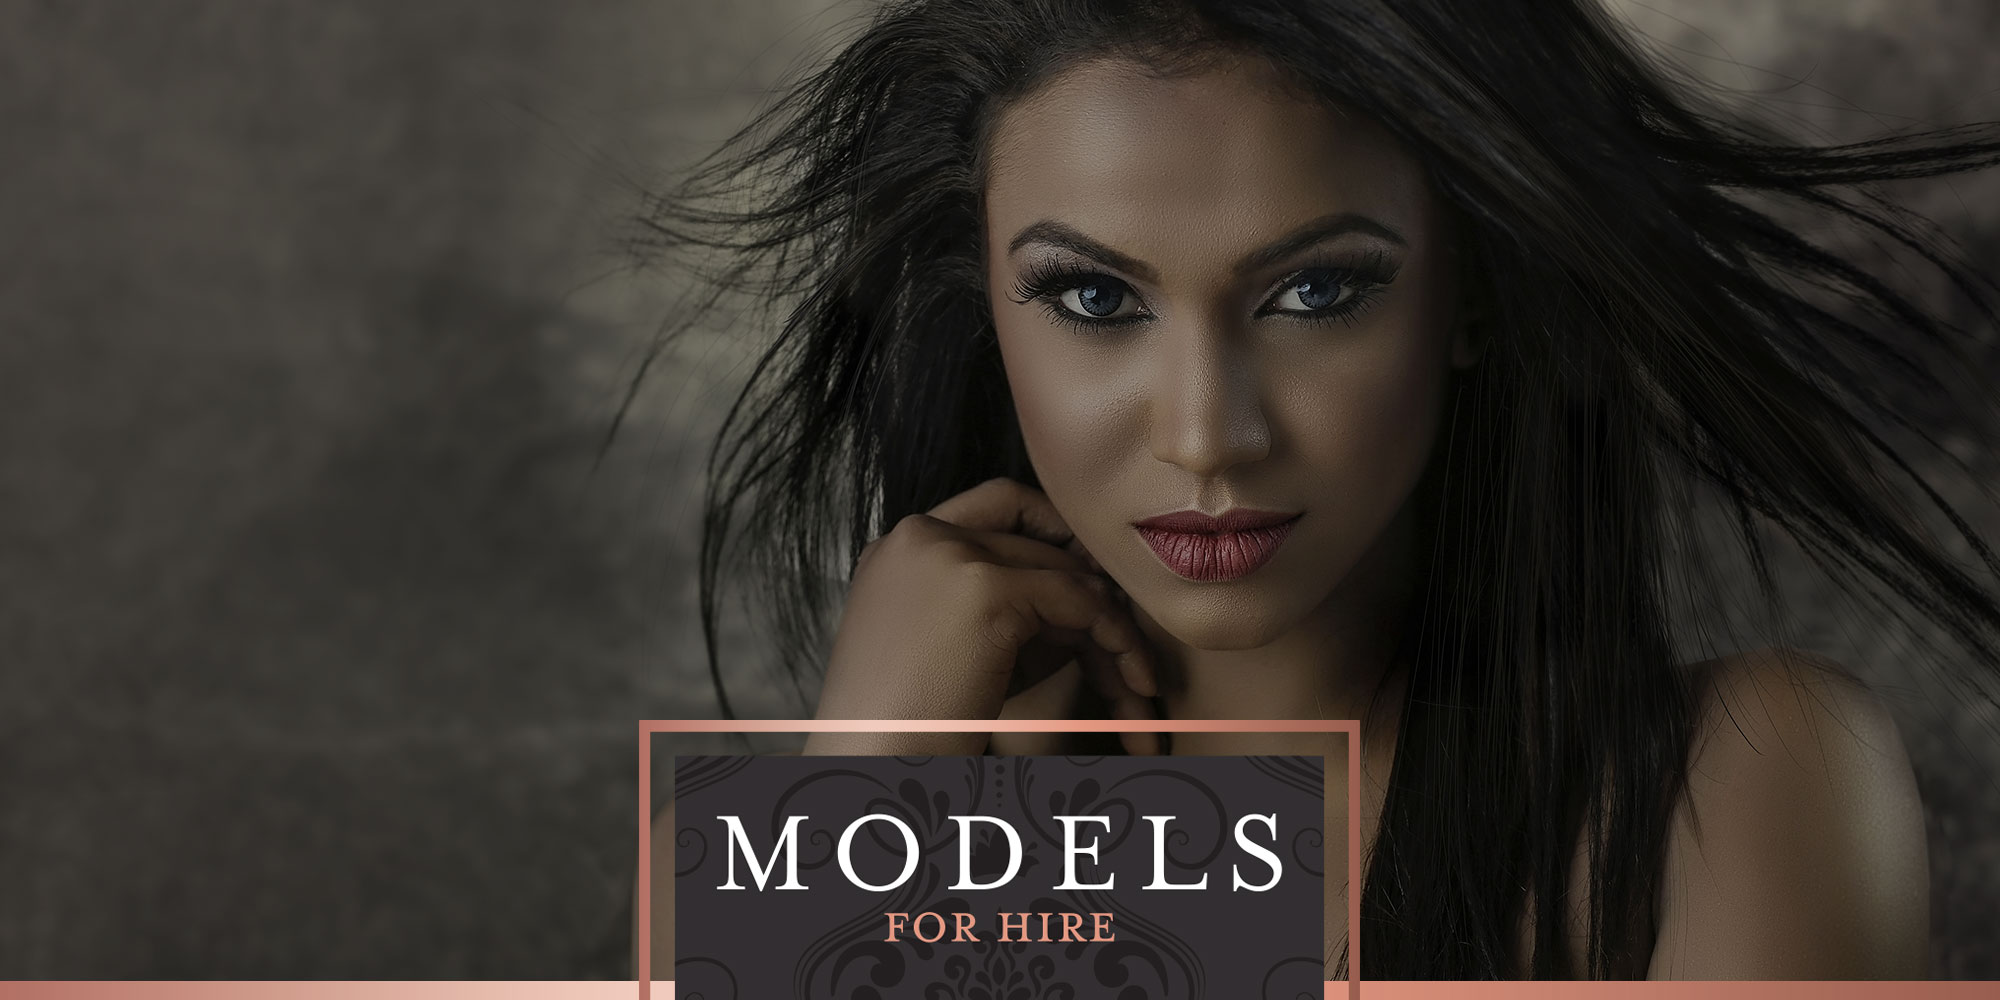 models for corporate events, models for private events, photoshoot models, pamphlet distribution models, pitgirls for the race track, shooter girls and alchohol promotion, club promoters, hostesses, private party hostesses